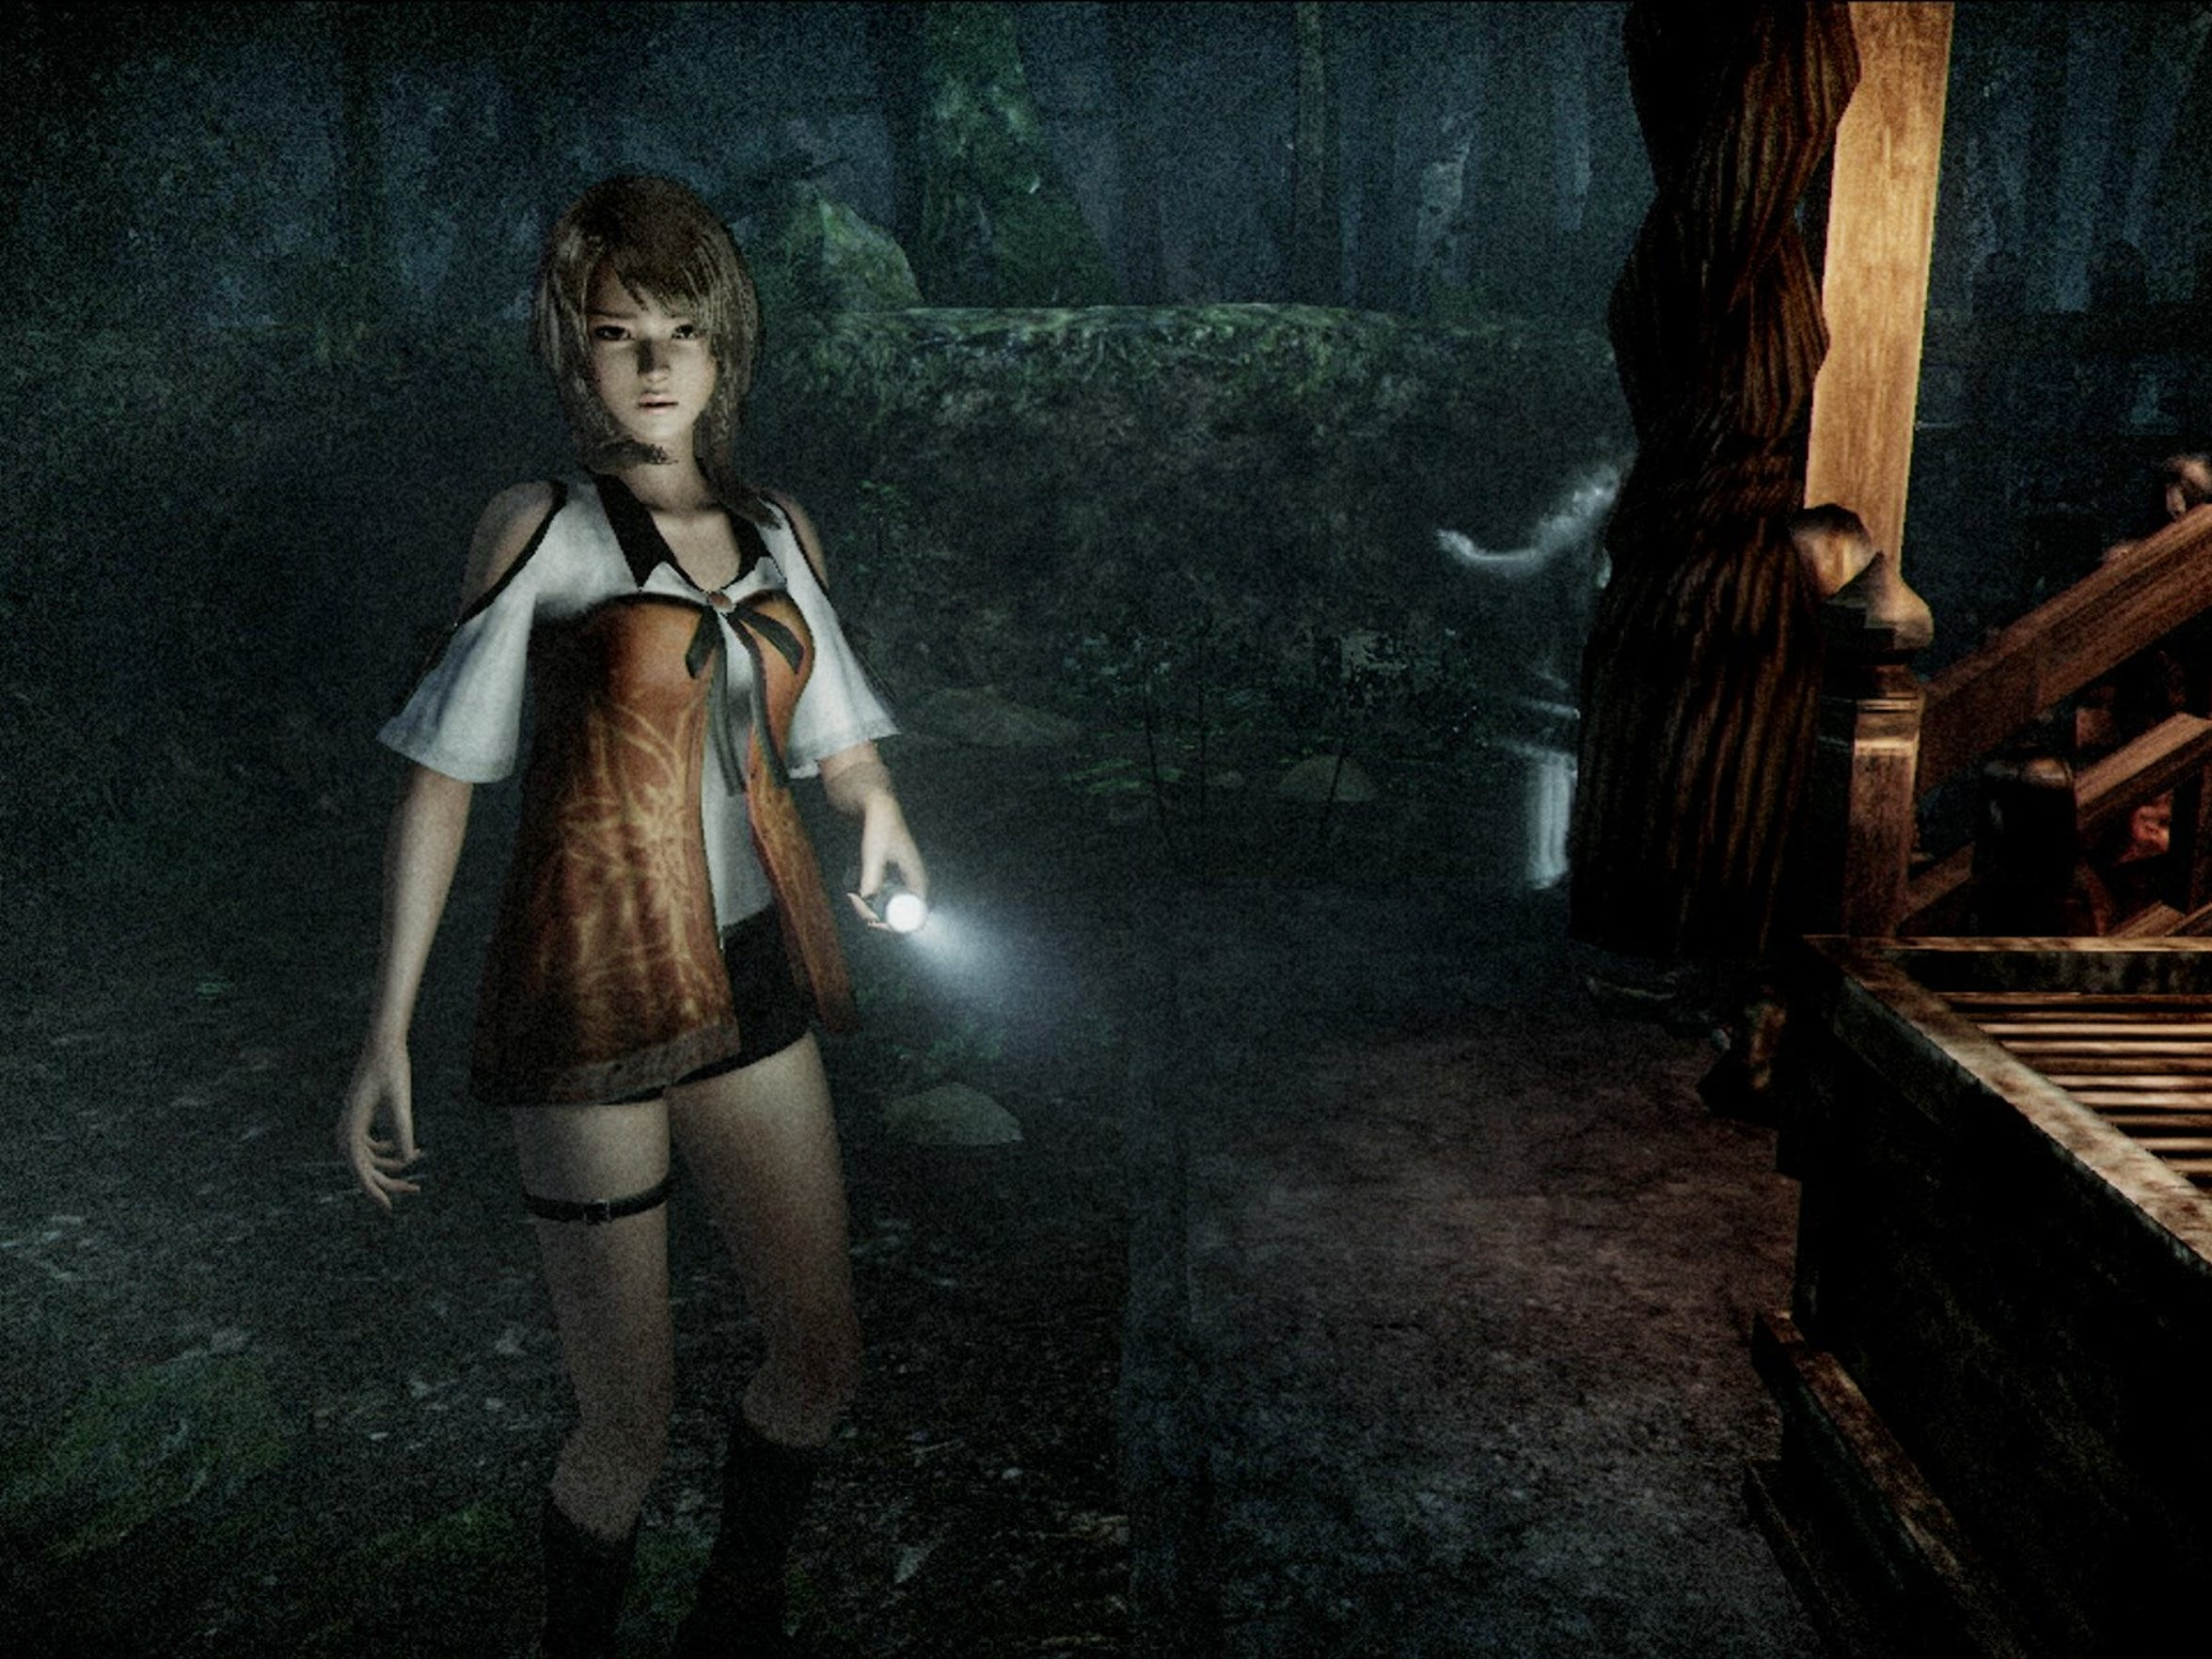 Fatal Frame: Maiden of Black Water lets you examine the mystery behind the rash of suicides and disappearances at Mt. Hikami.